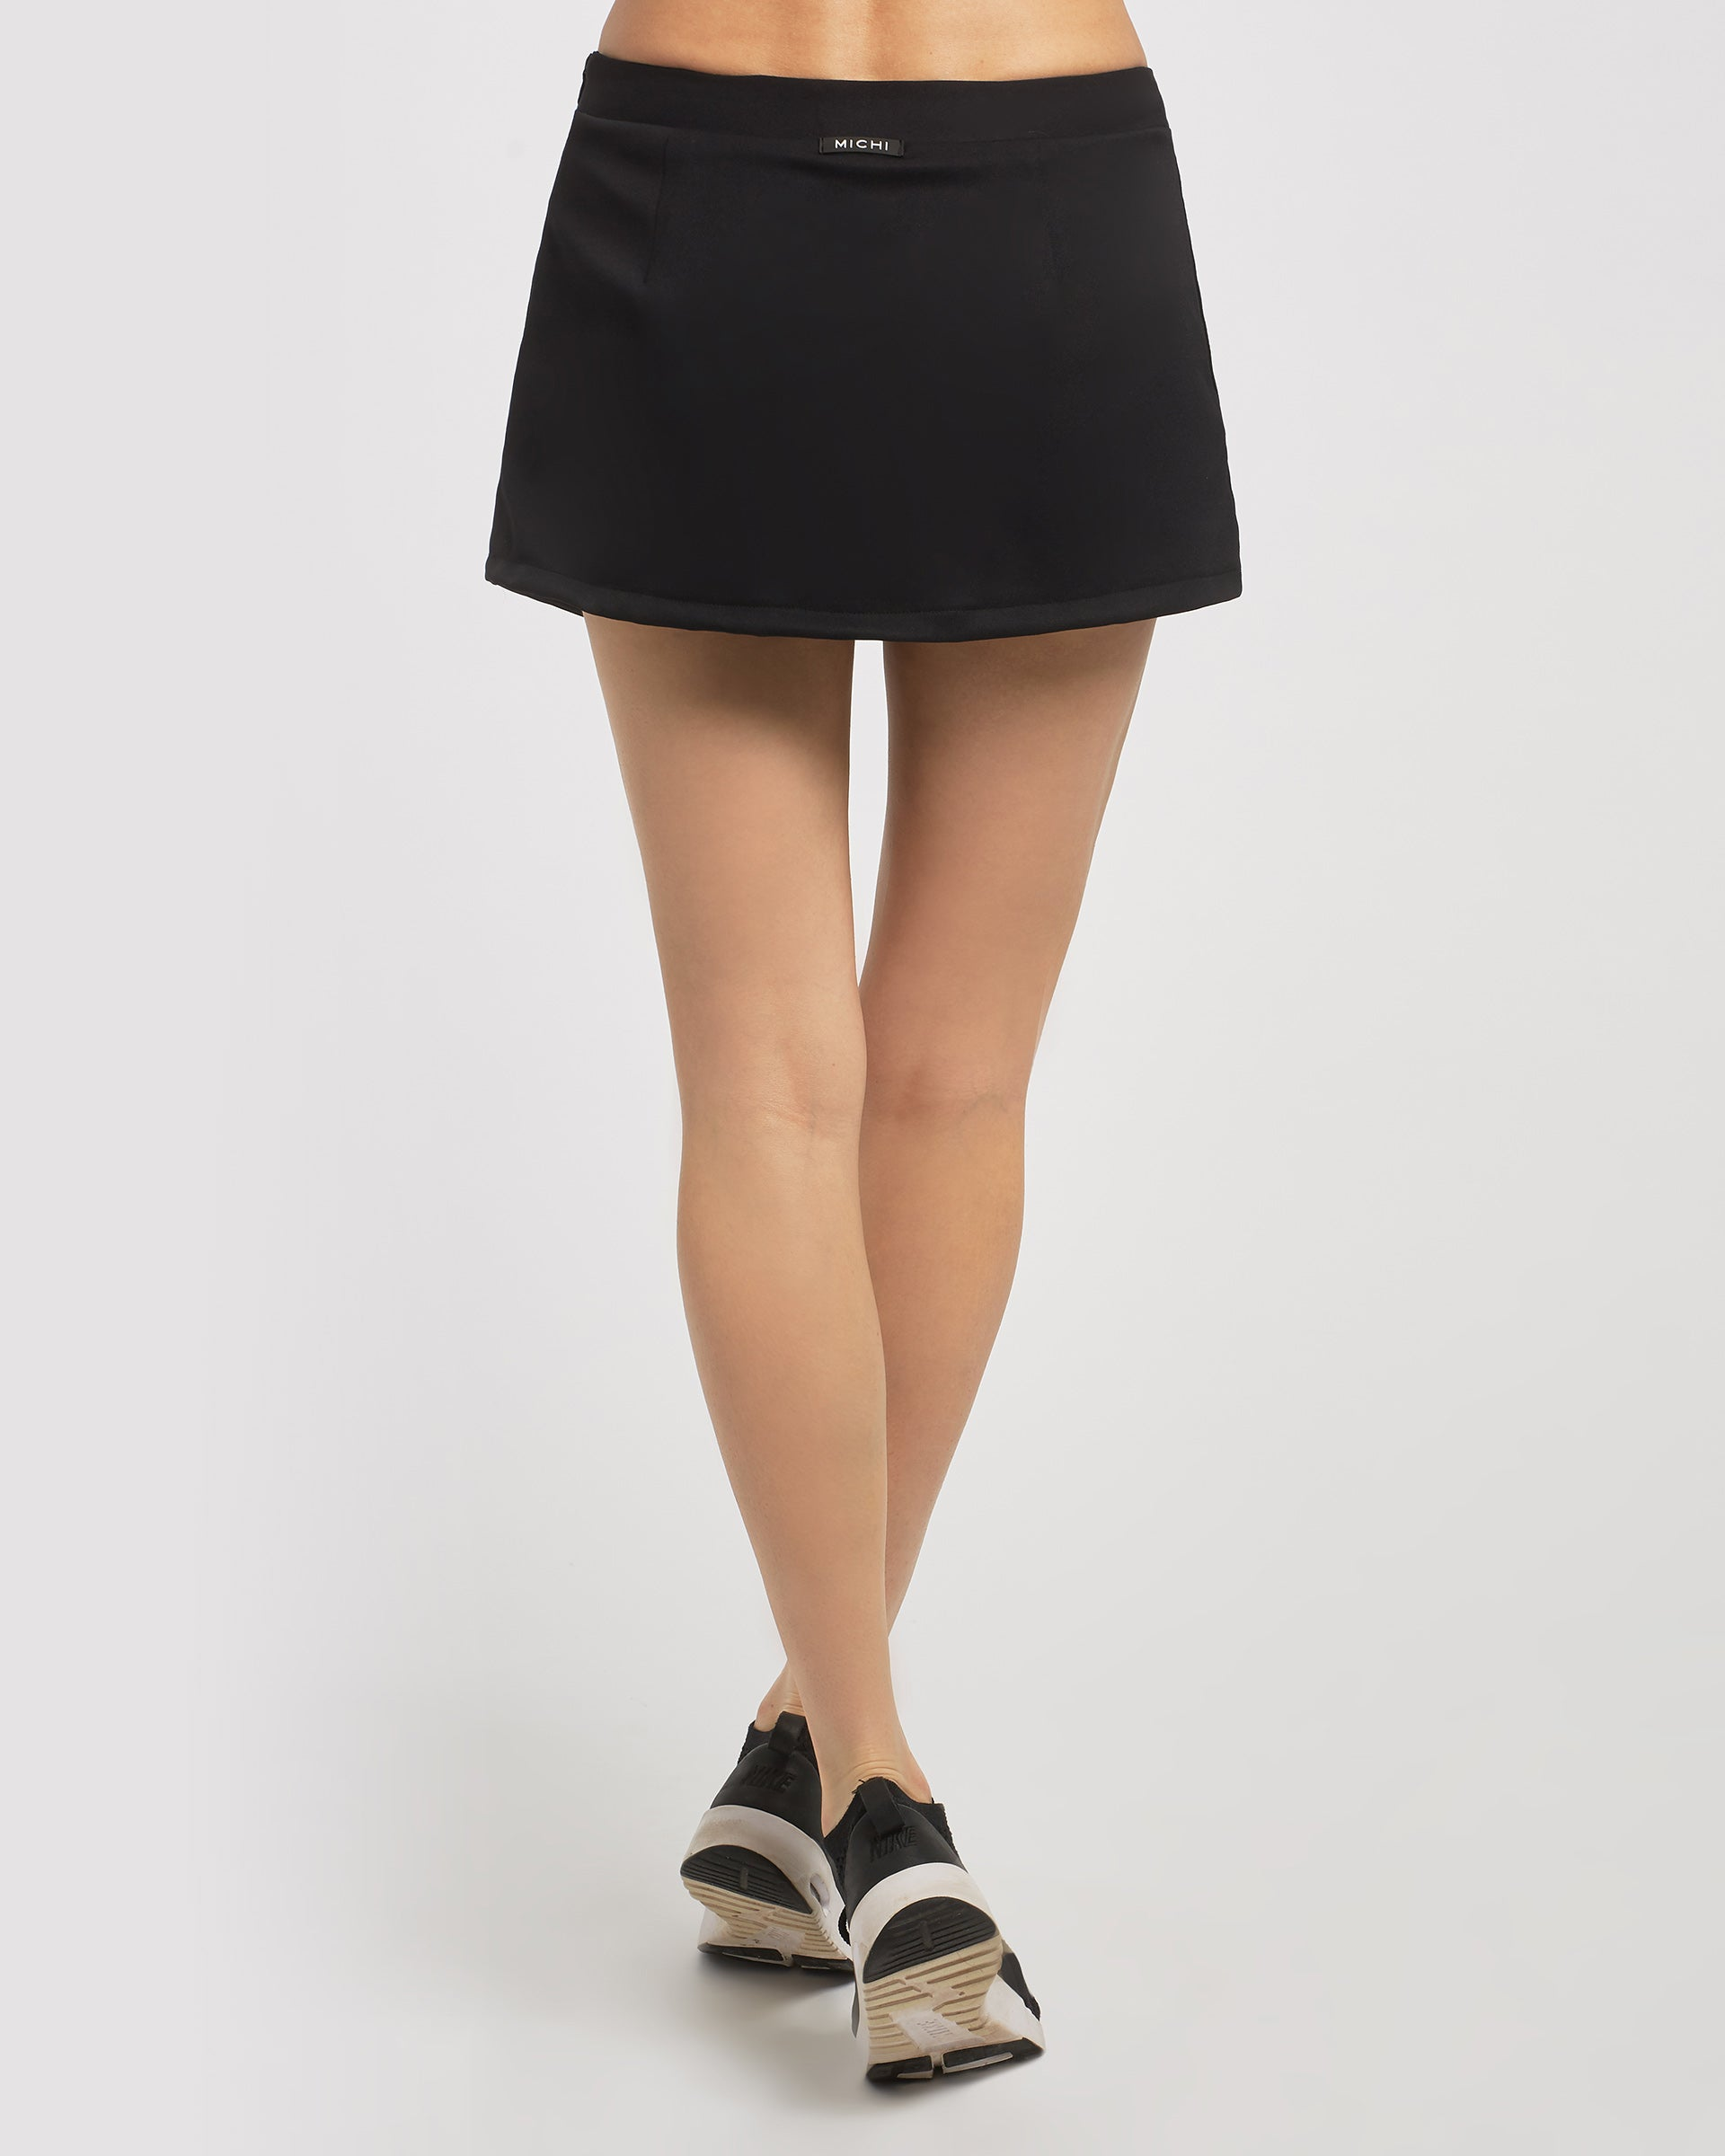 Birdie Skirt - Black